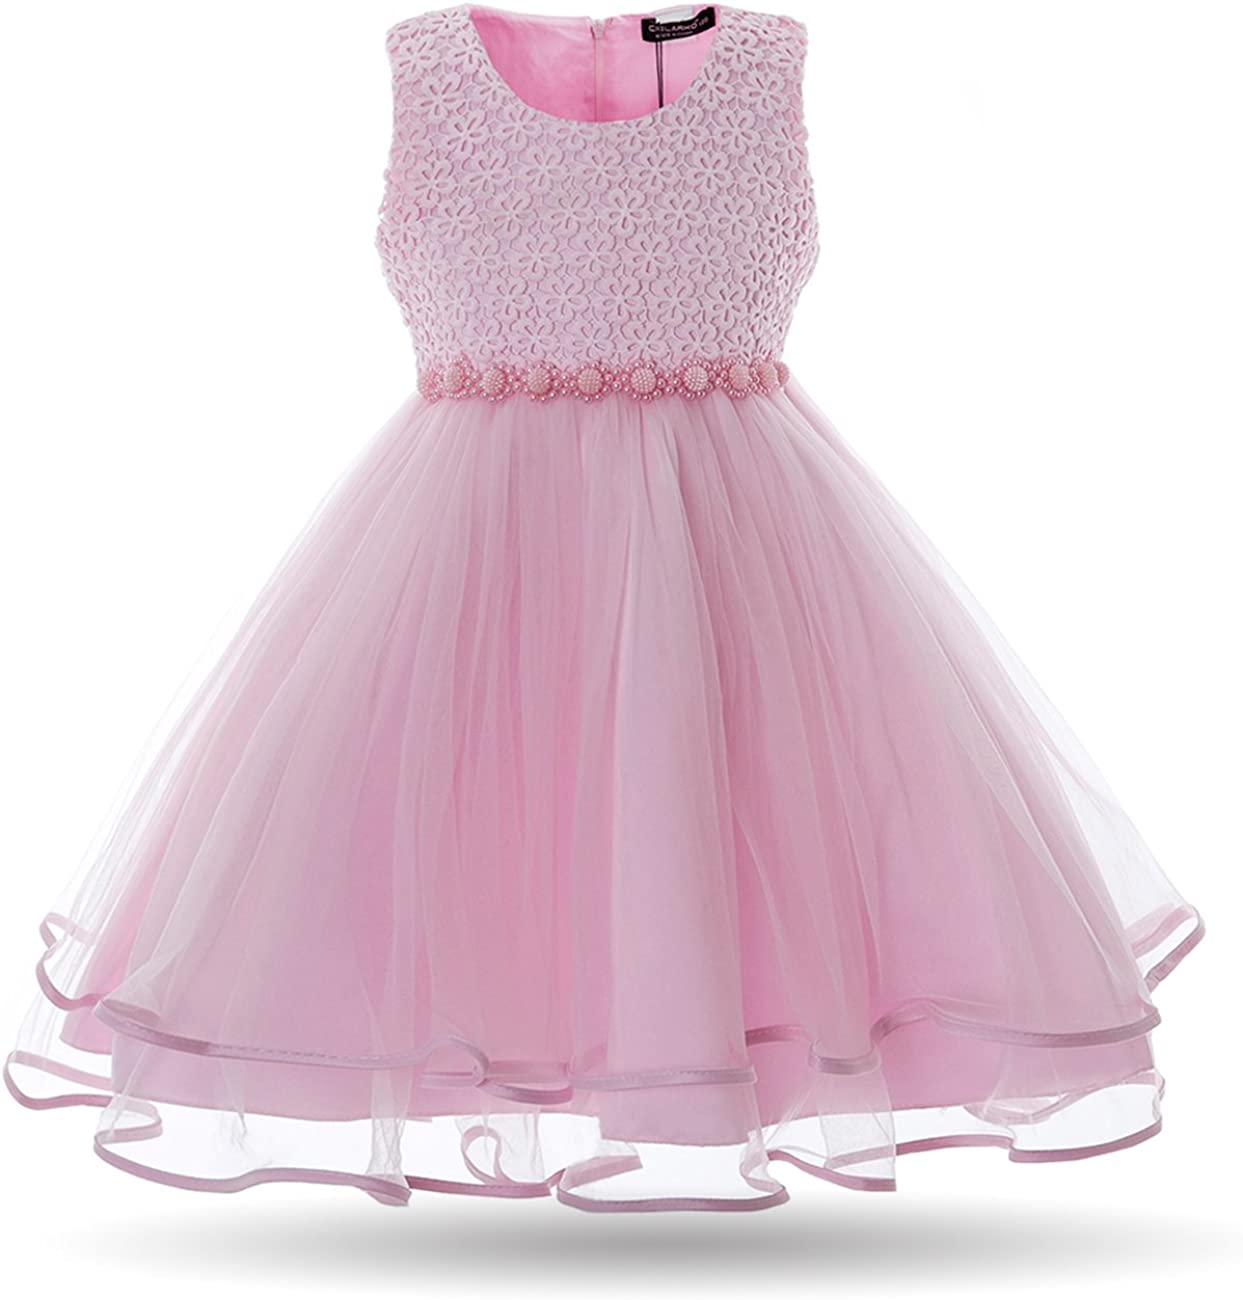 Cielarko Children Girl Dress Butterfly Flower Embroidery Formal Wedding Party Dresses for Girls 2 to 11 Years